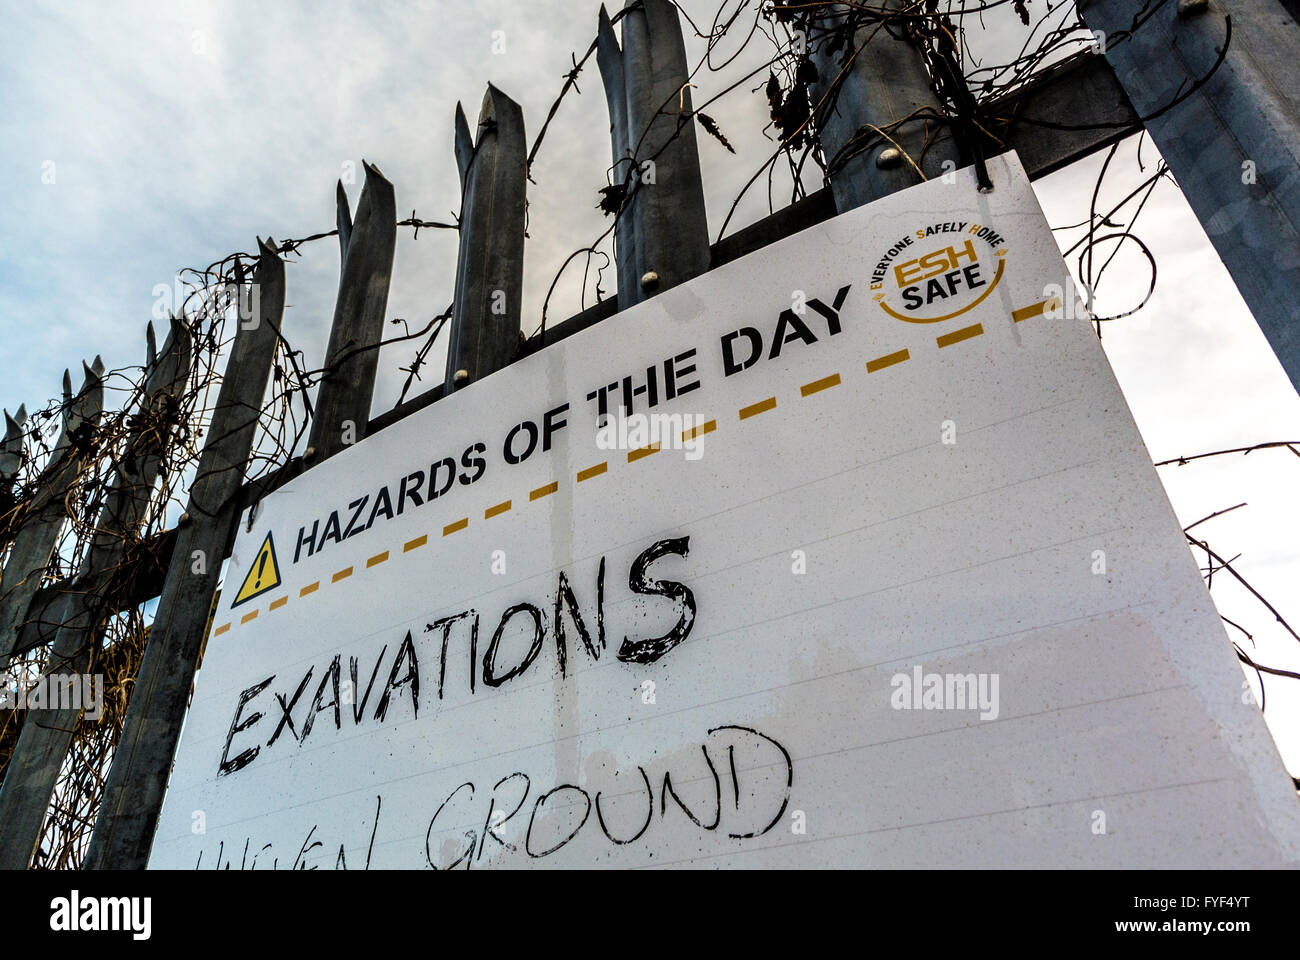 Hazards of the day sign on building site with mispelled word Exavations (Excavations) - Stock Image